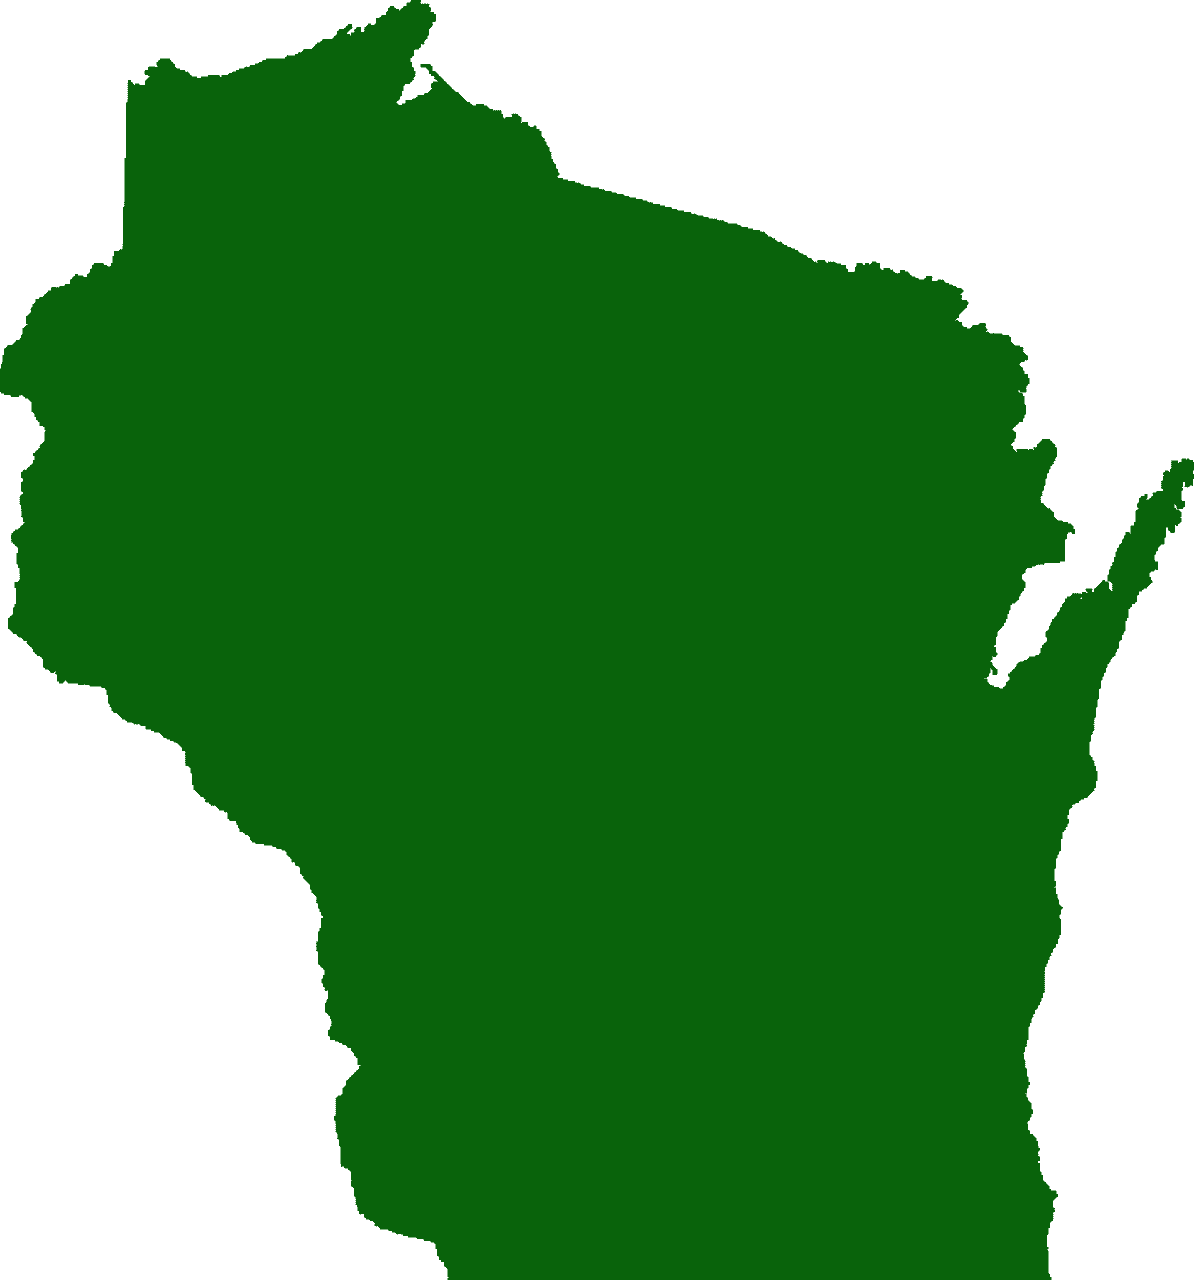 Wisconsin Map silhouette.